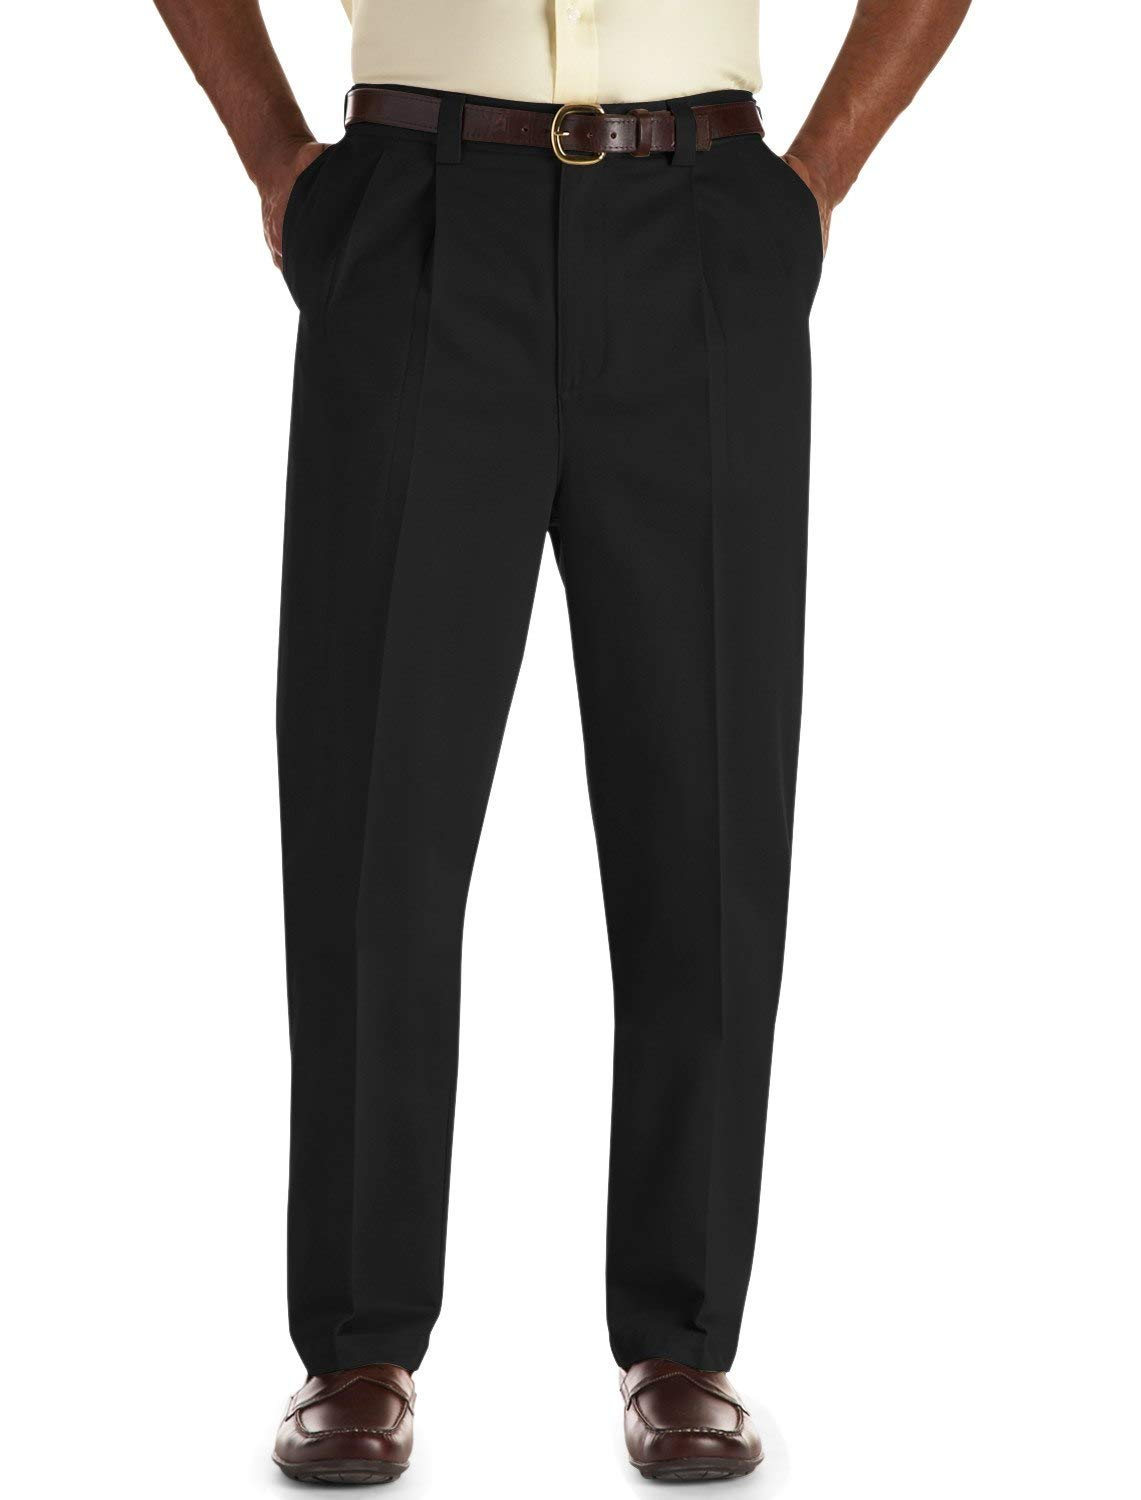 Oak Hill by DXL Big and Tall Pleated Premium Stretch Twill Pants, Black, 58 X 28, Regular Rise